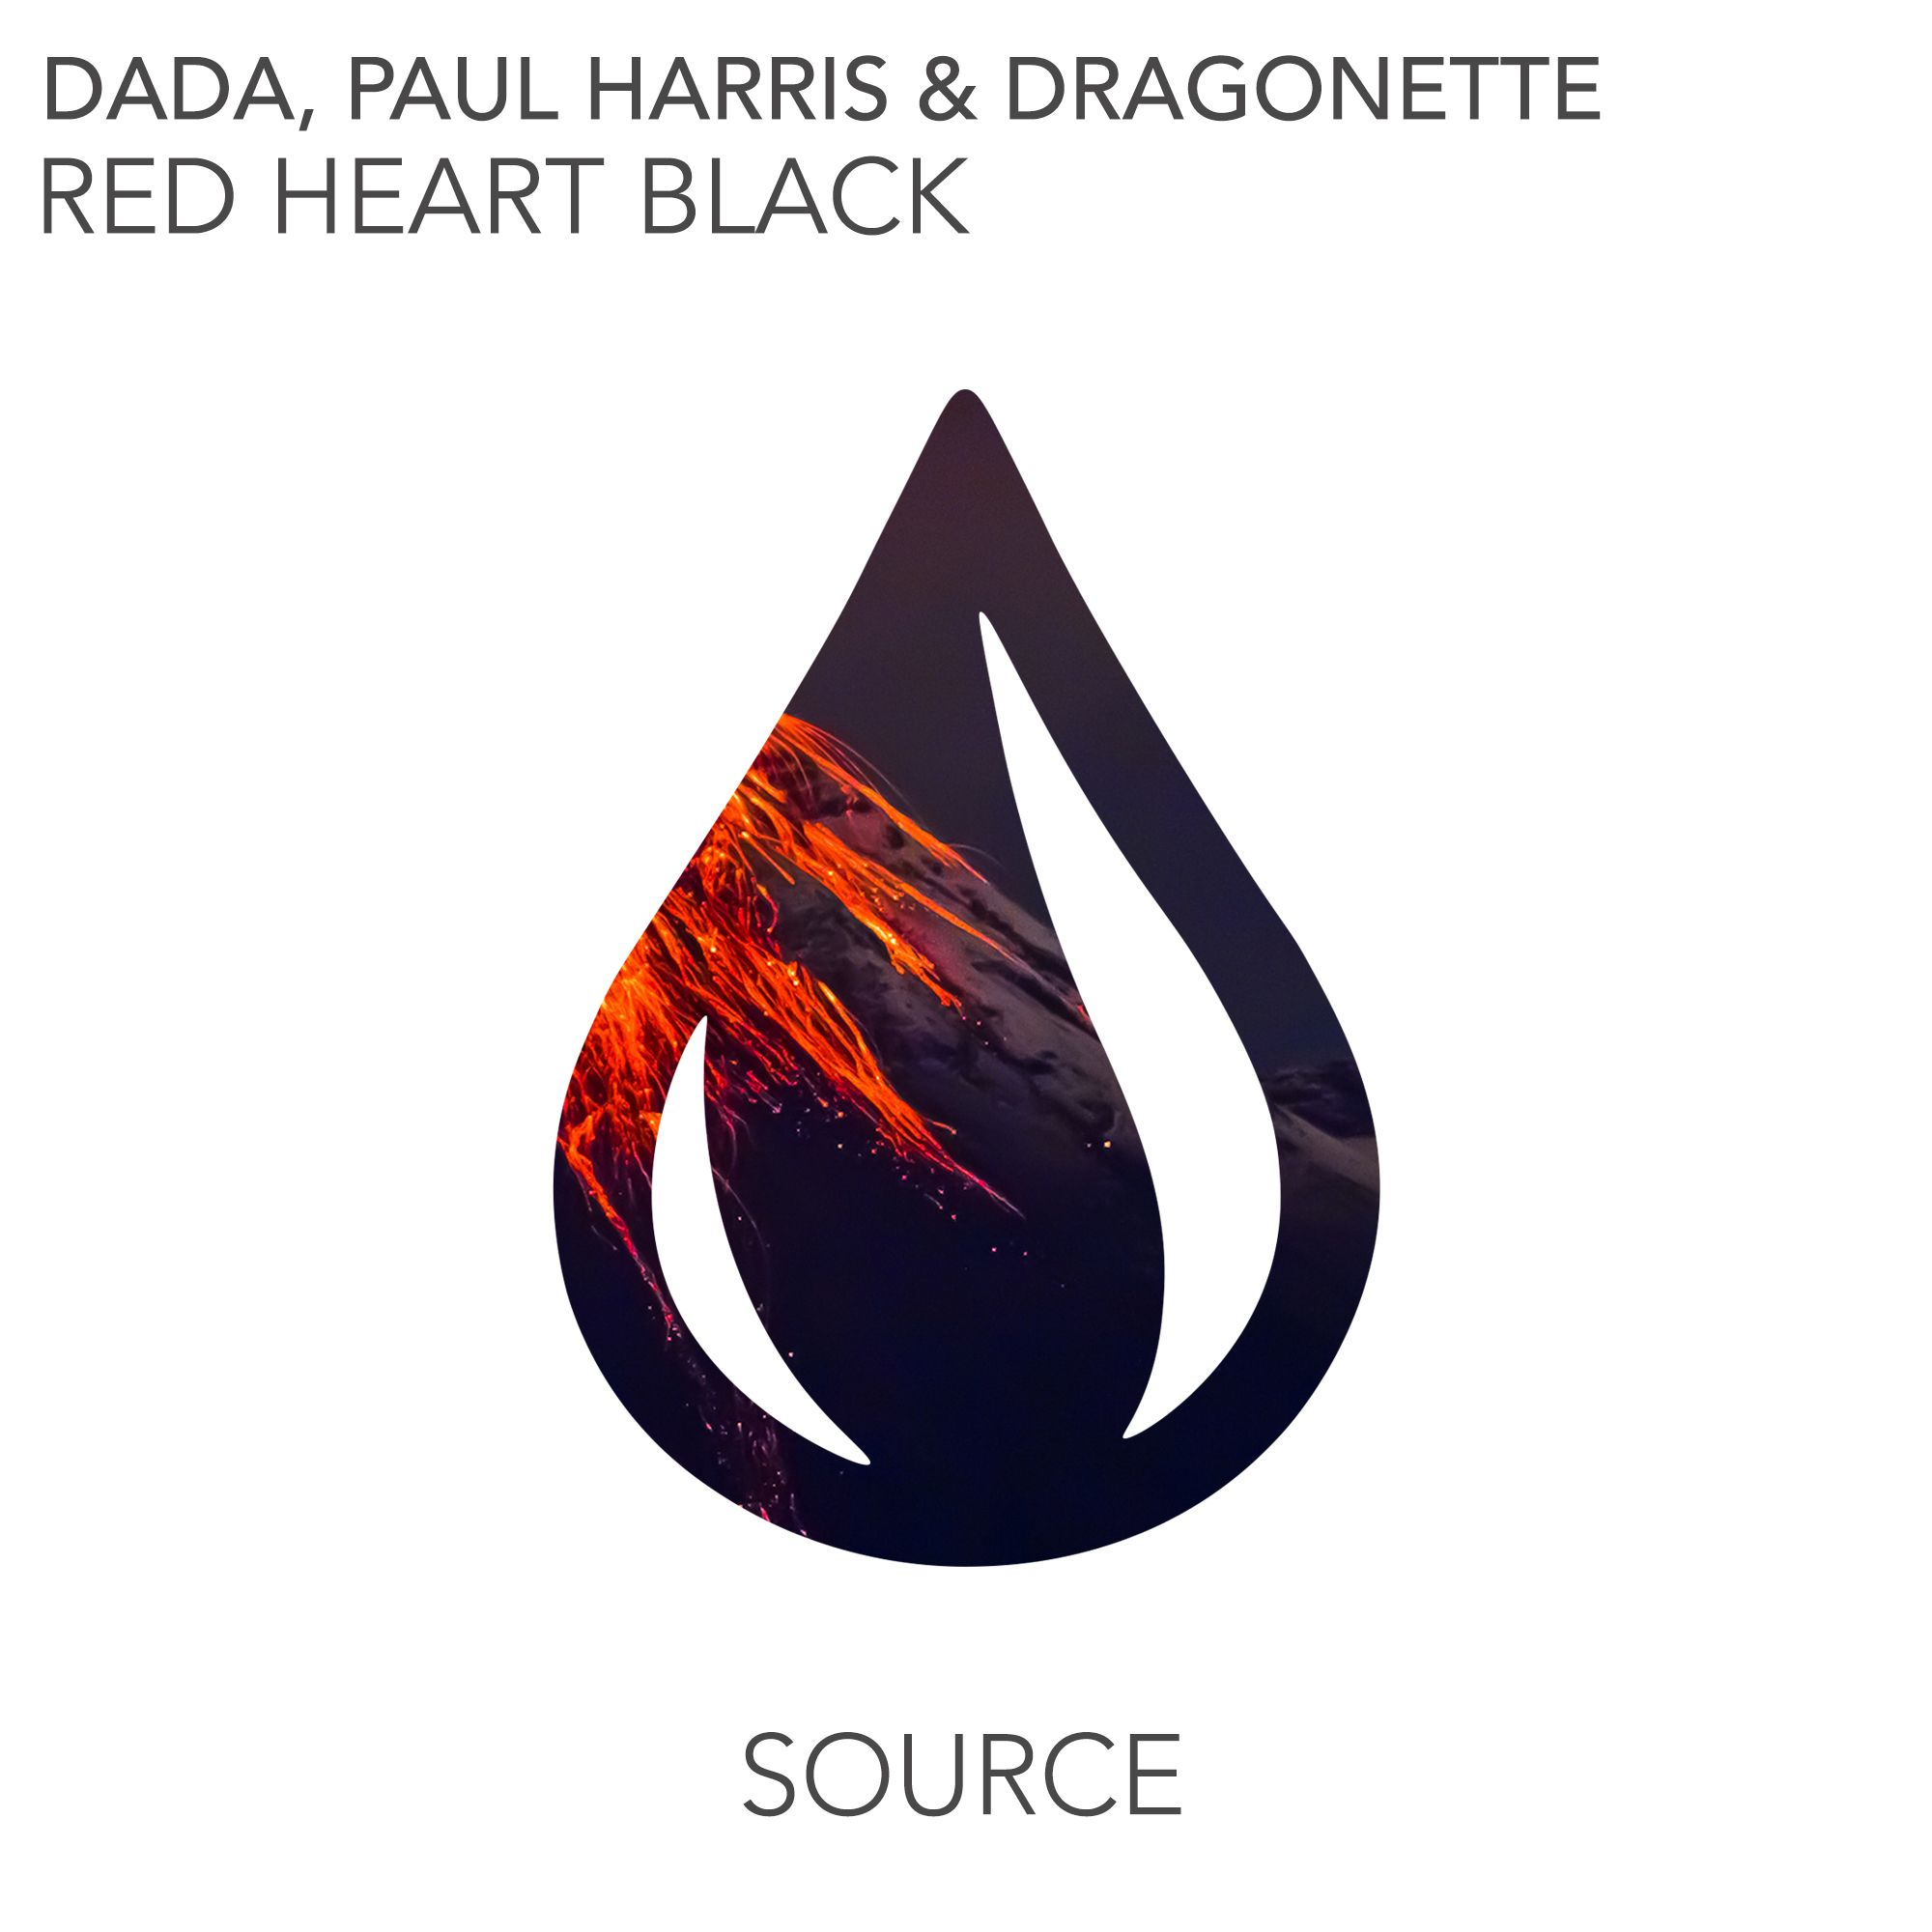 source_dada_paul_harris_dragonette_-_red_heart_black.jpg